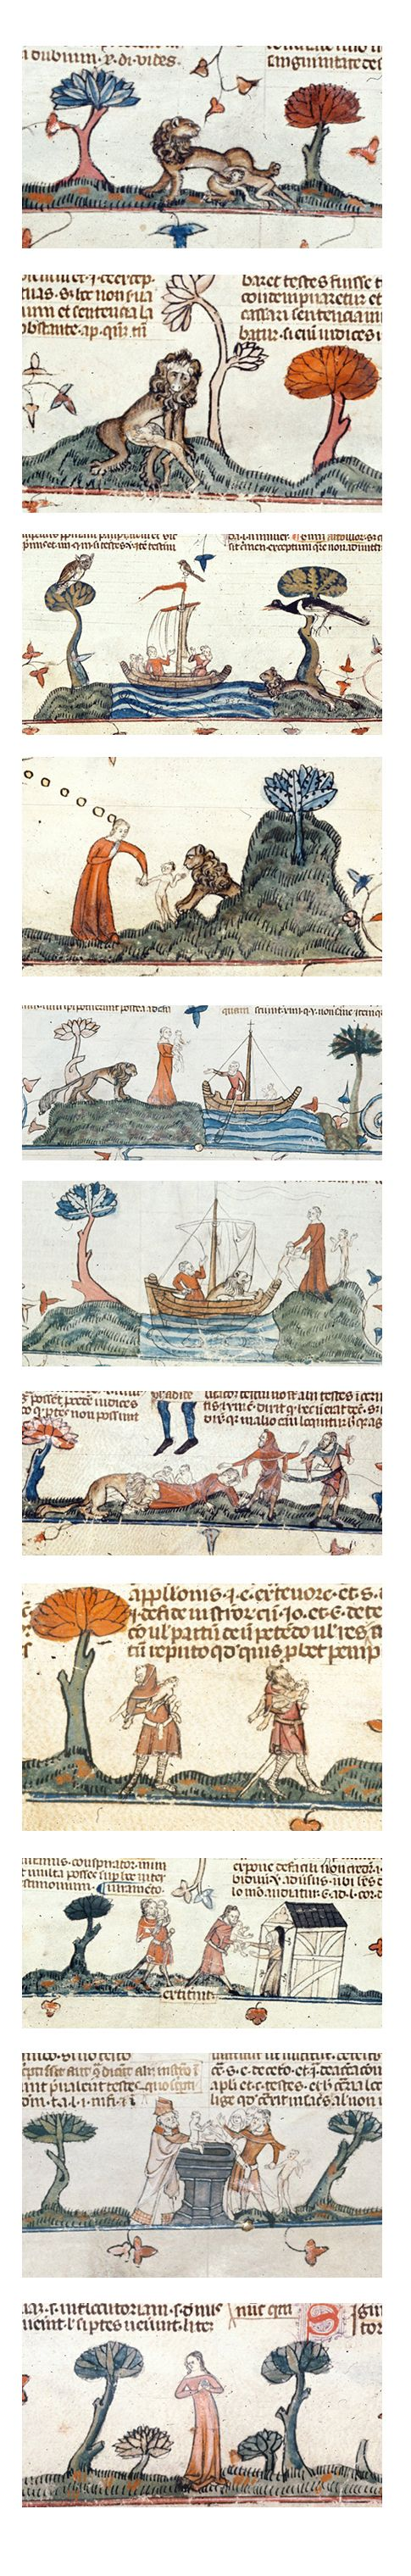 Lion and Children sequence A story lost in the mist of time about two children raised by a lion and baptised Series of images from Smithfield Decretals Gregory IX (a collection of medieval canon law) French about 1350 in Southern France. .